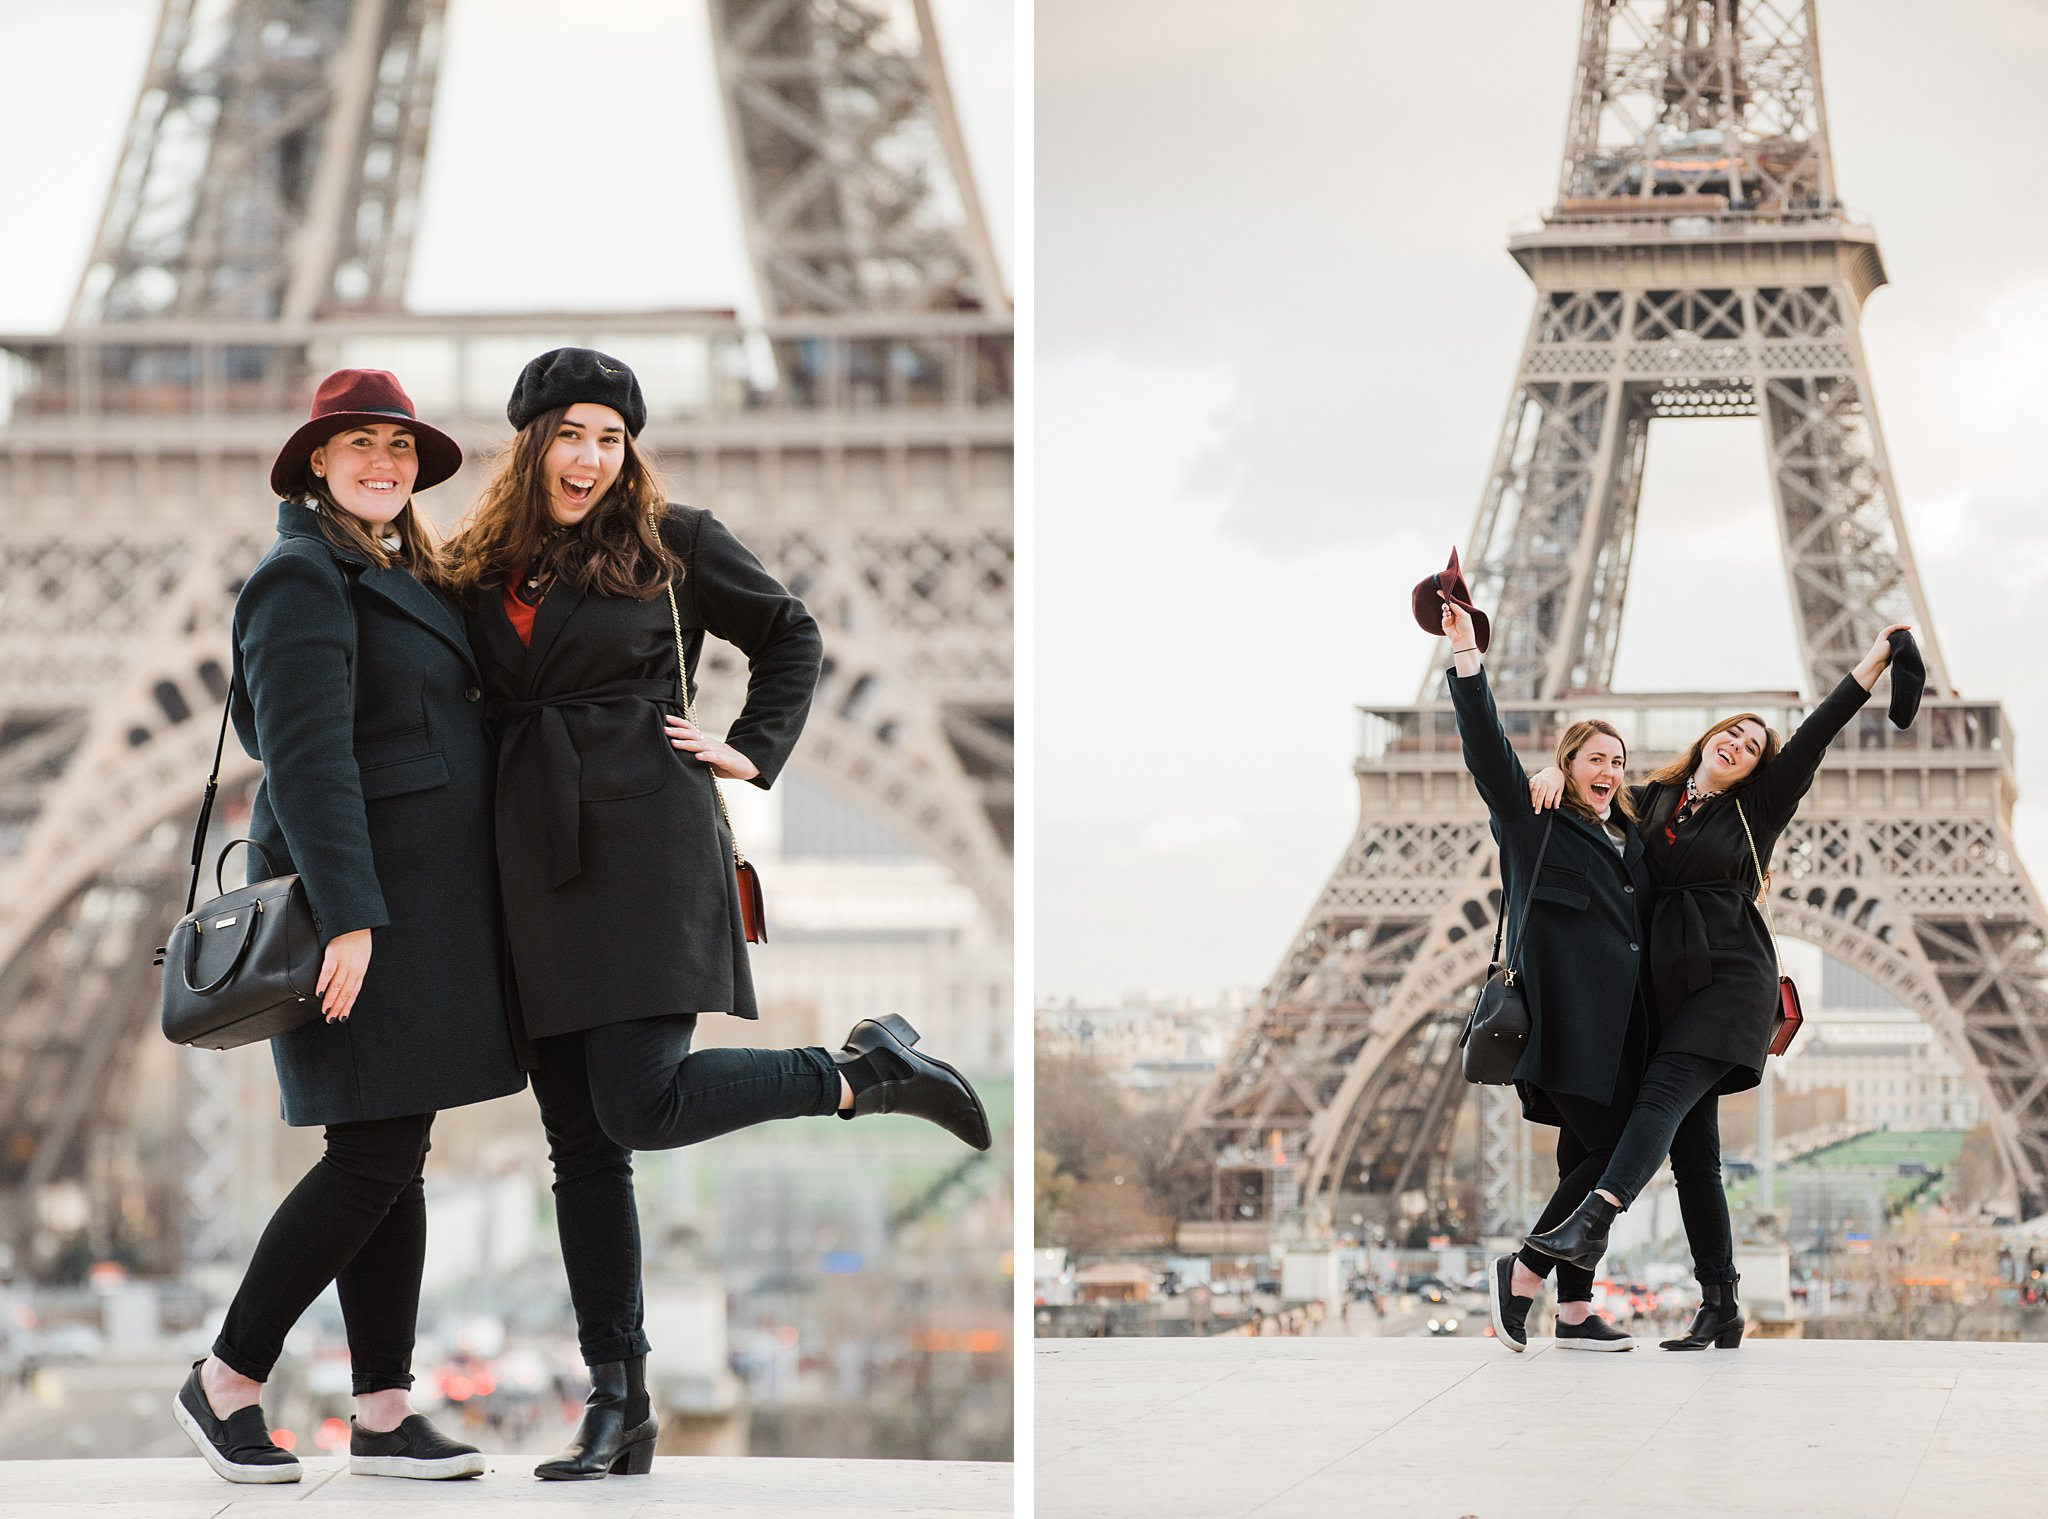 Two sisters posing together at the Eiffel Tower on a winter photo shoot in Paris, as a study abroad activity and Christmas gift